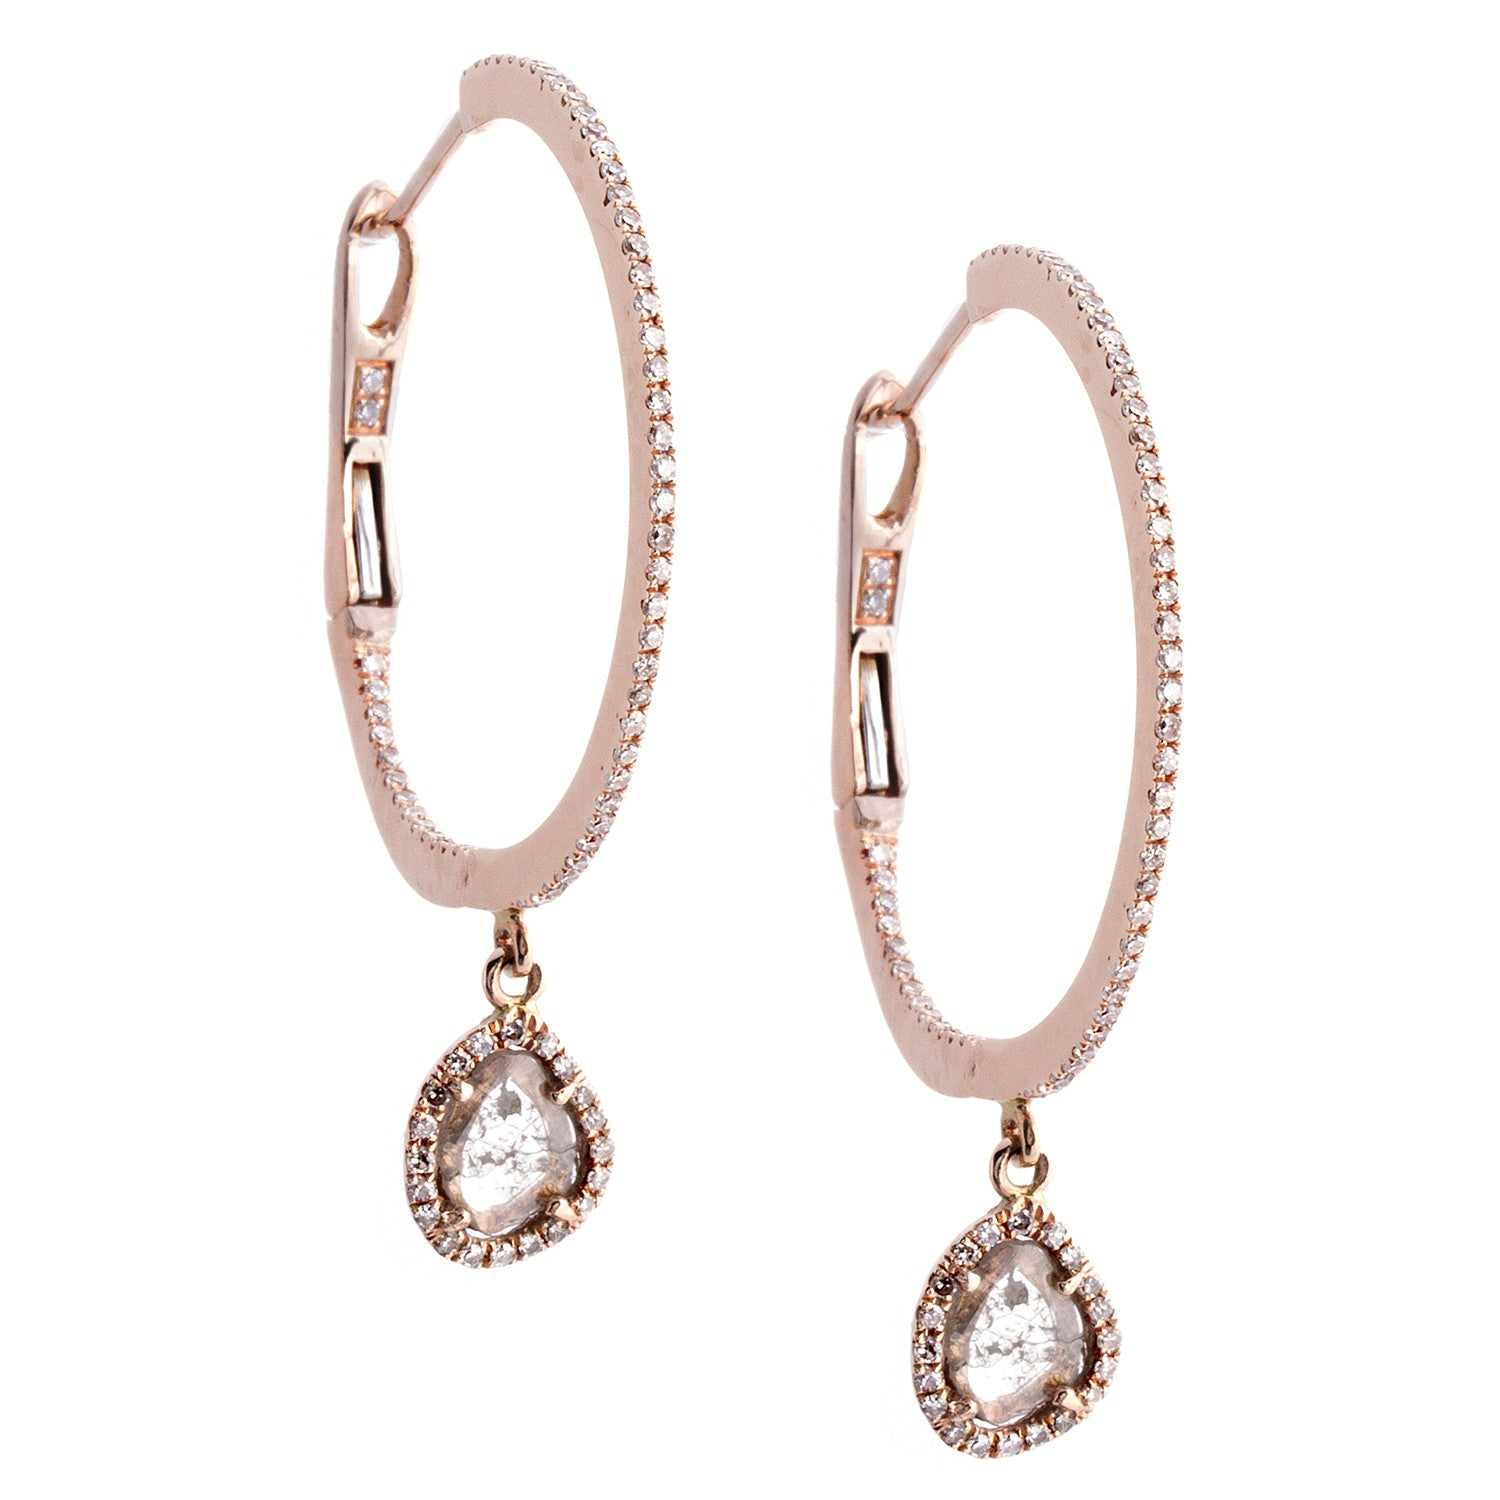 Diamonds & 14K Rose Gold Hoop Earrings- SOLD/CAN BE SPECIAL ORDERED WITH 4-6 WEEKS DELIVERY TIME FRAME